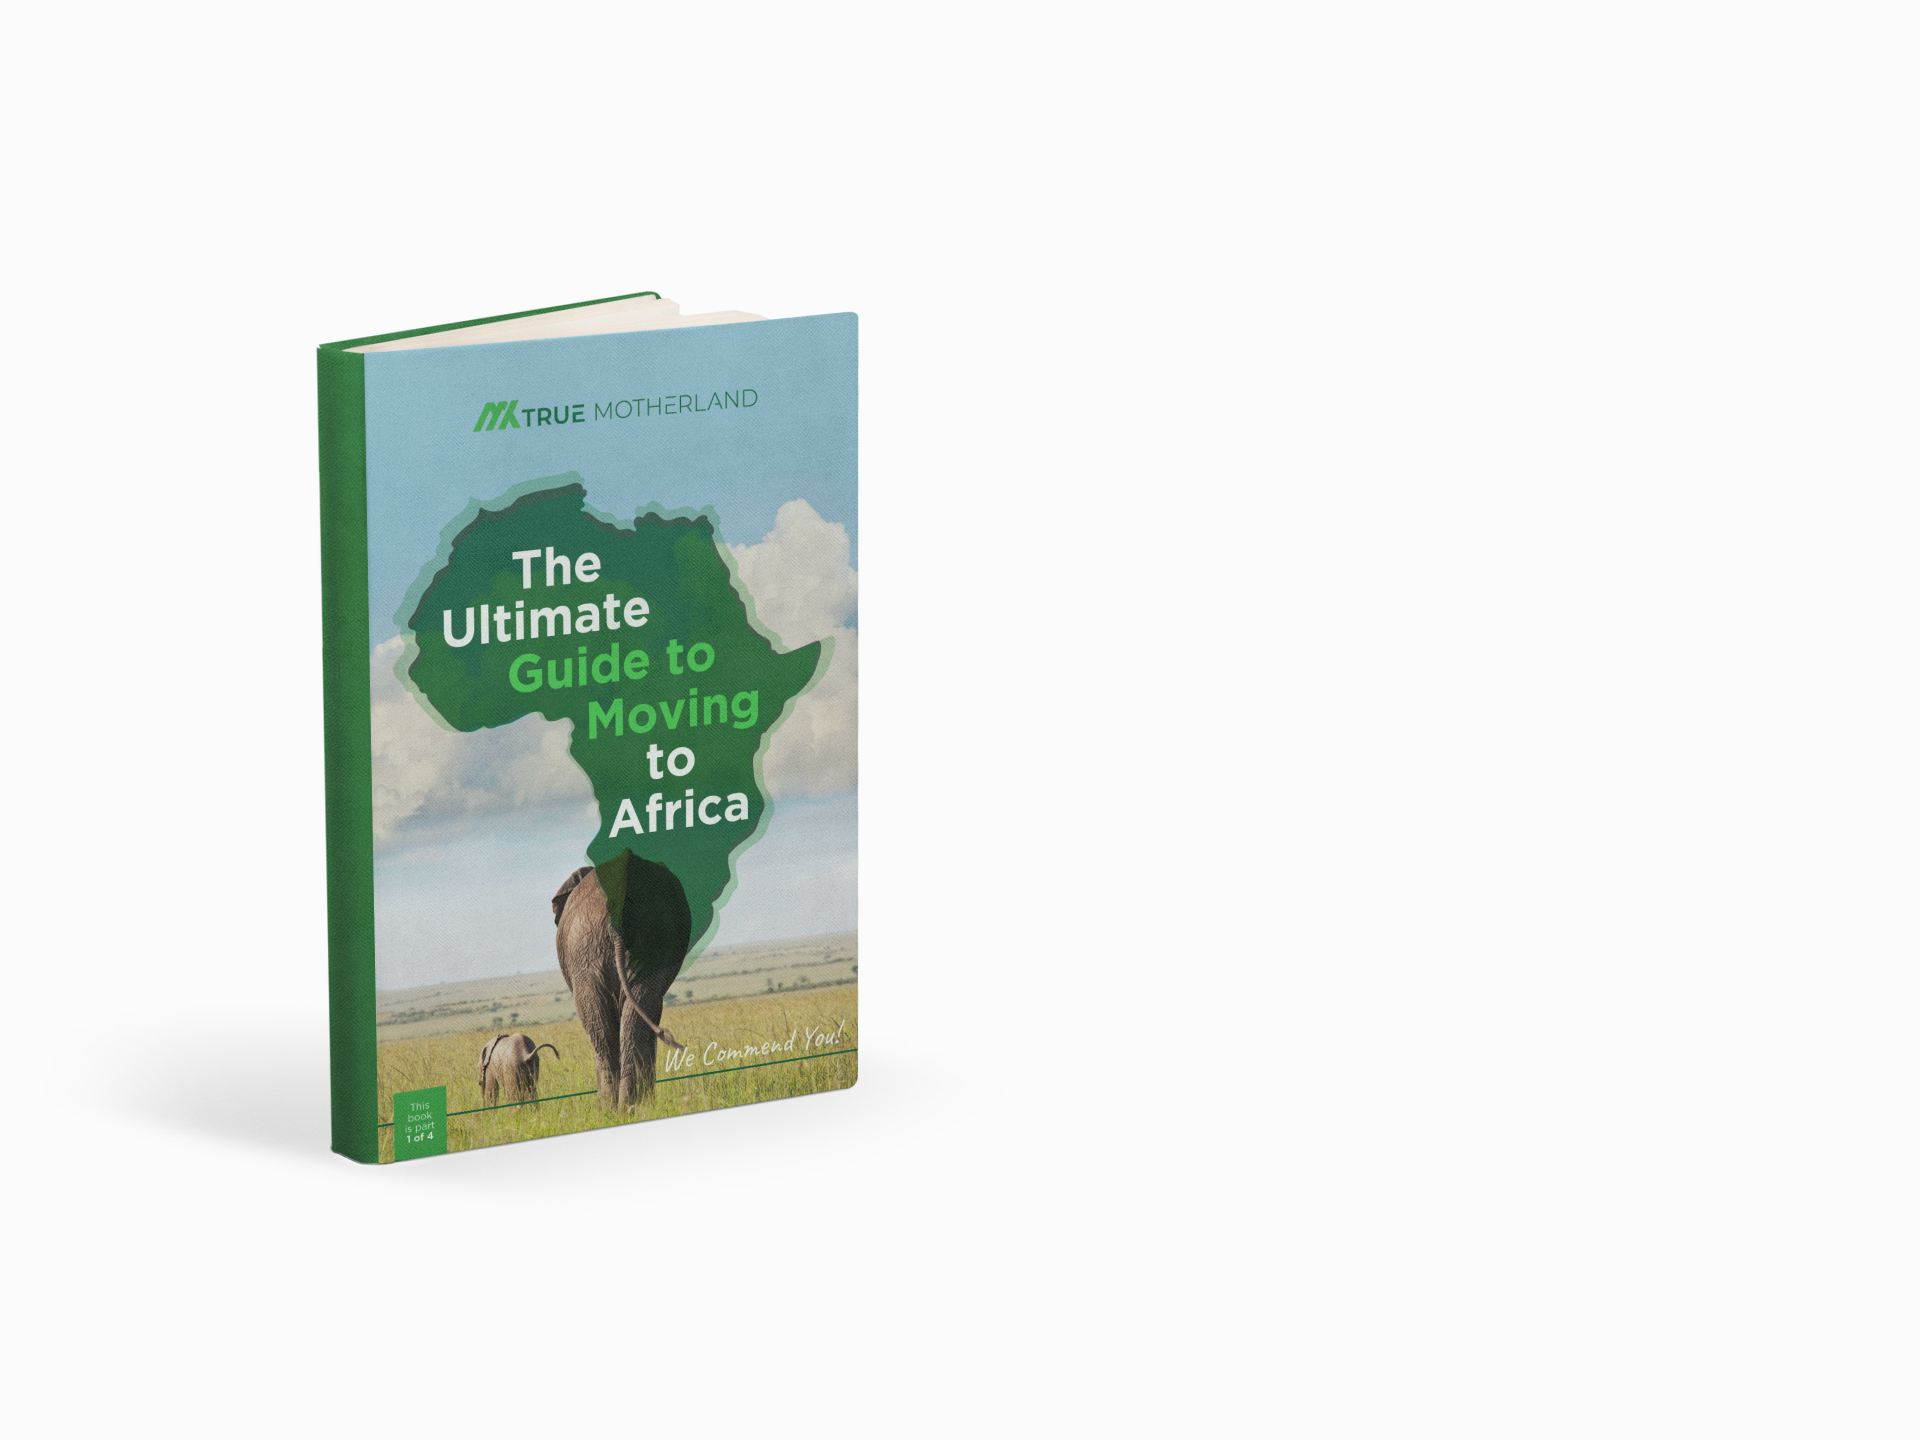 The Ultimate Guide to moving to Africa